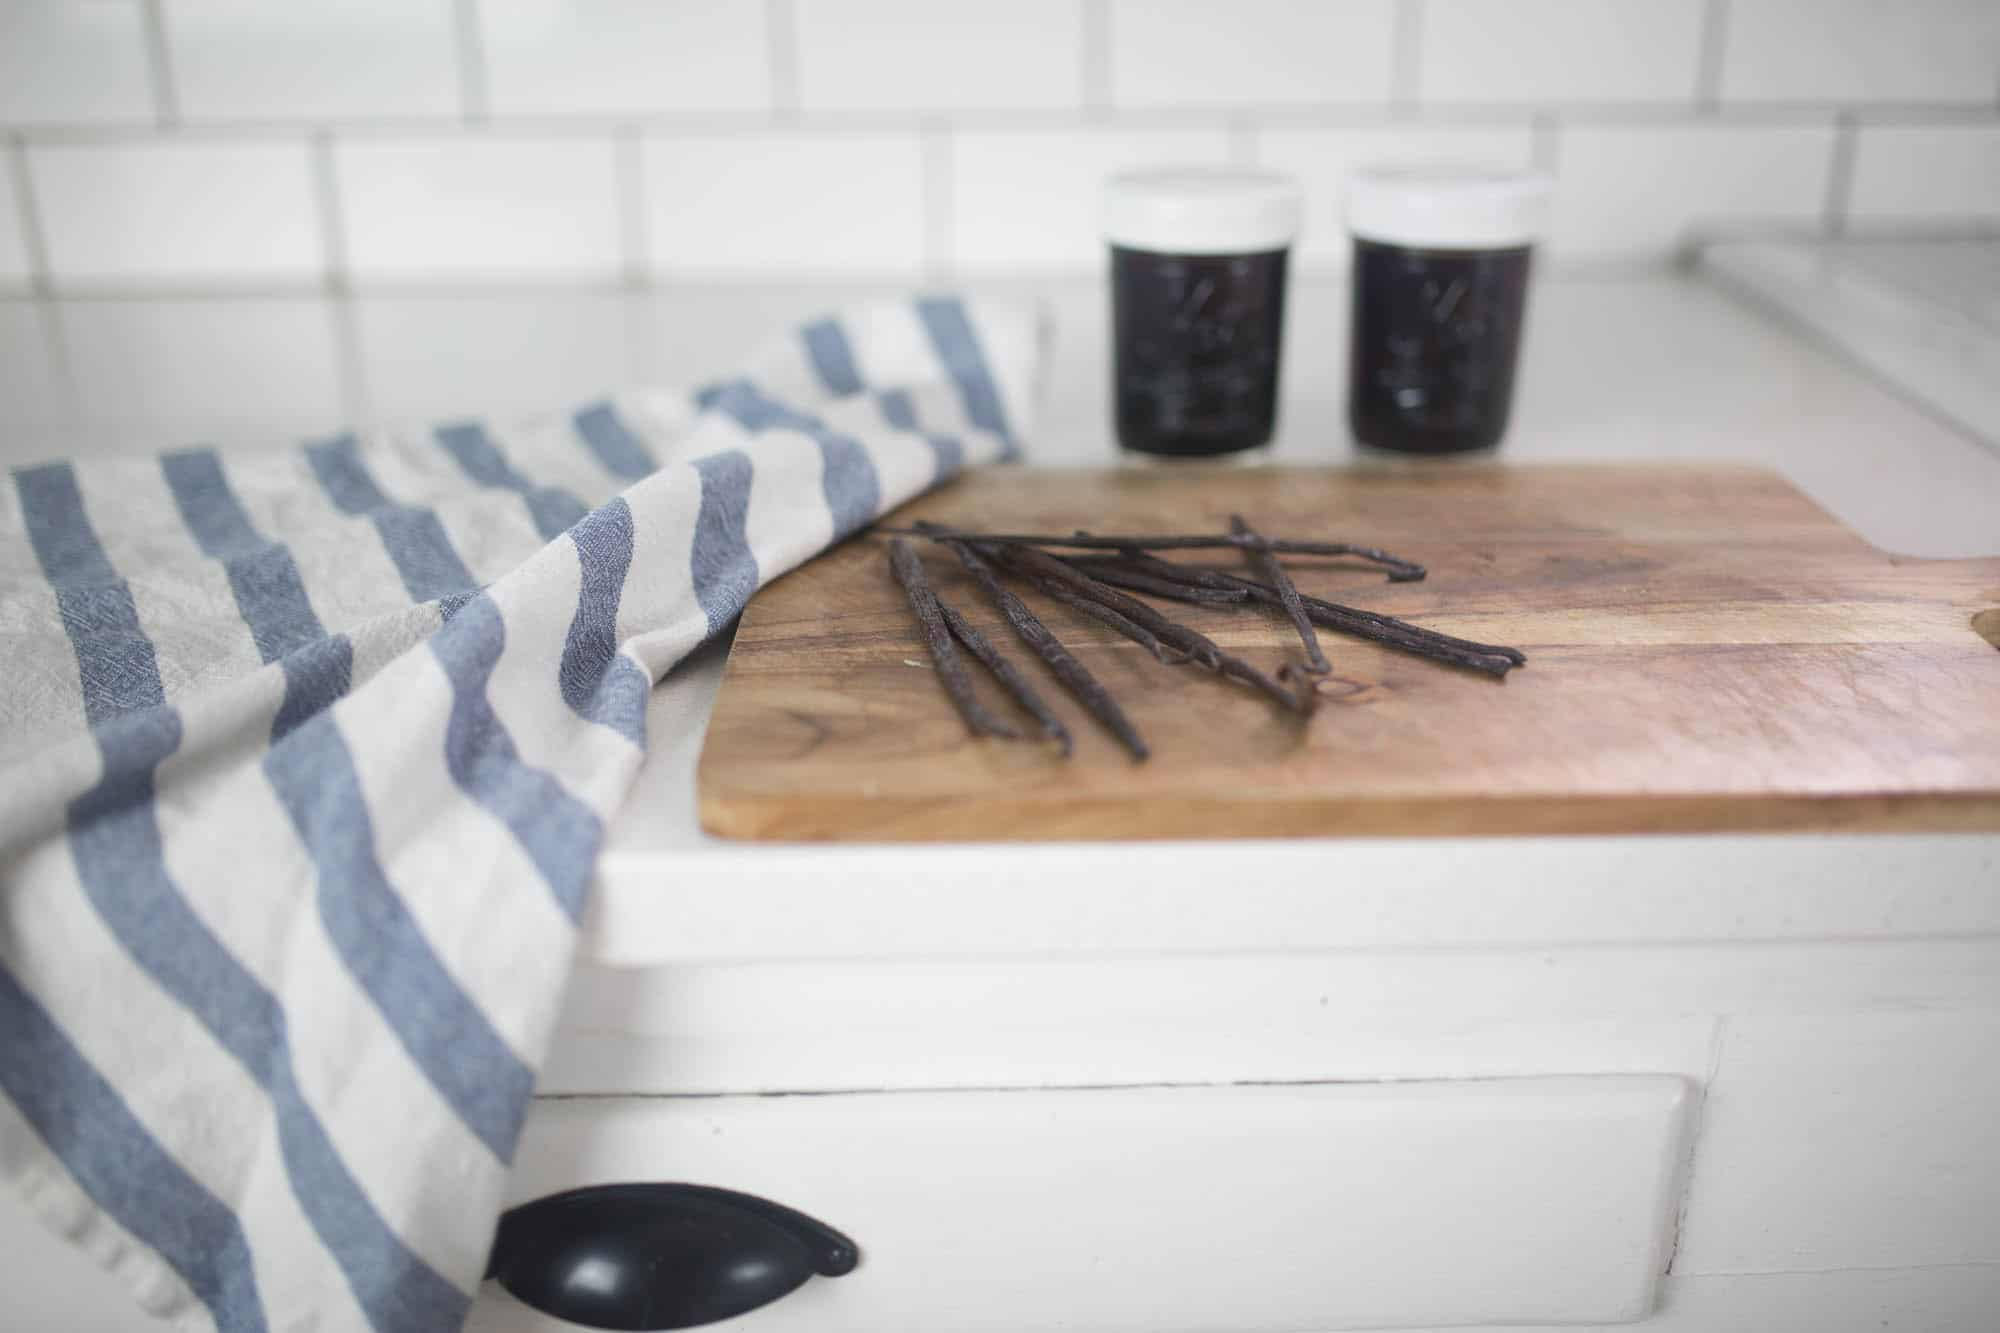 simple instructions to make homemade vanilla extract